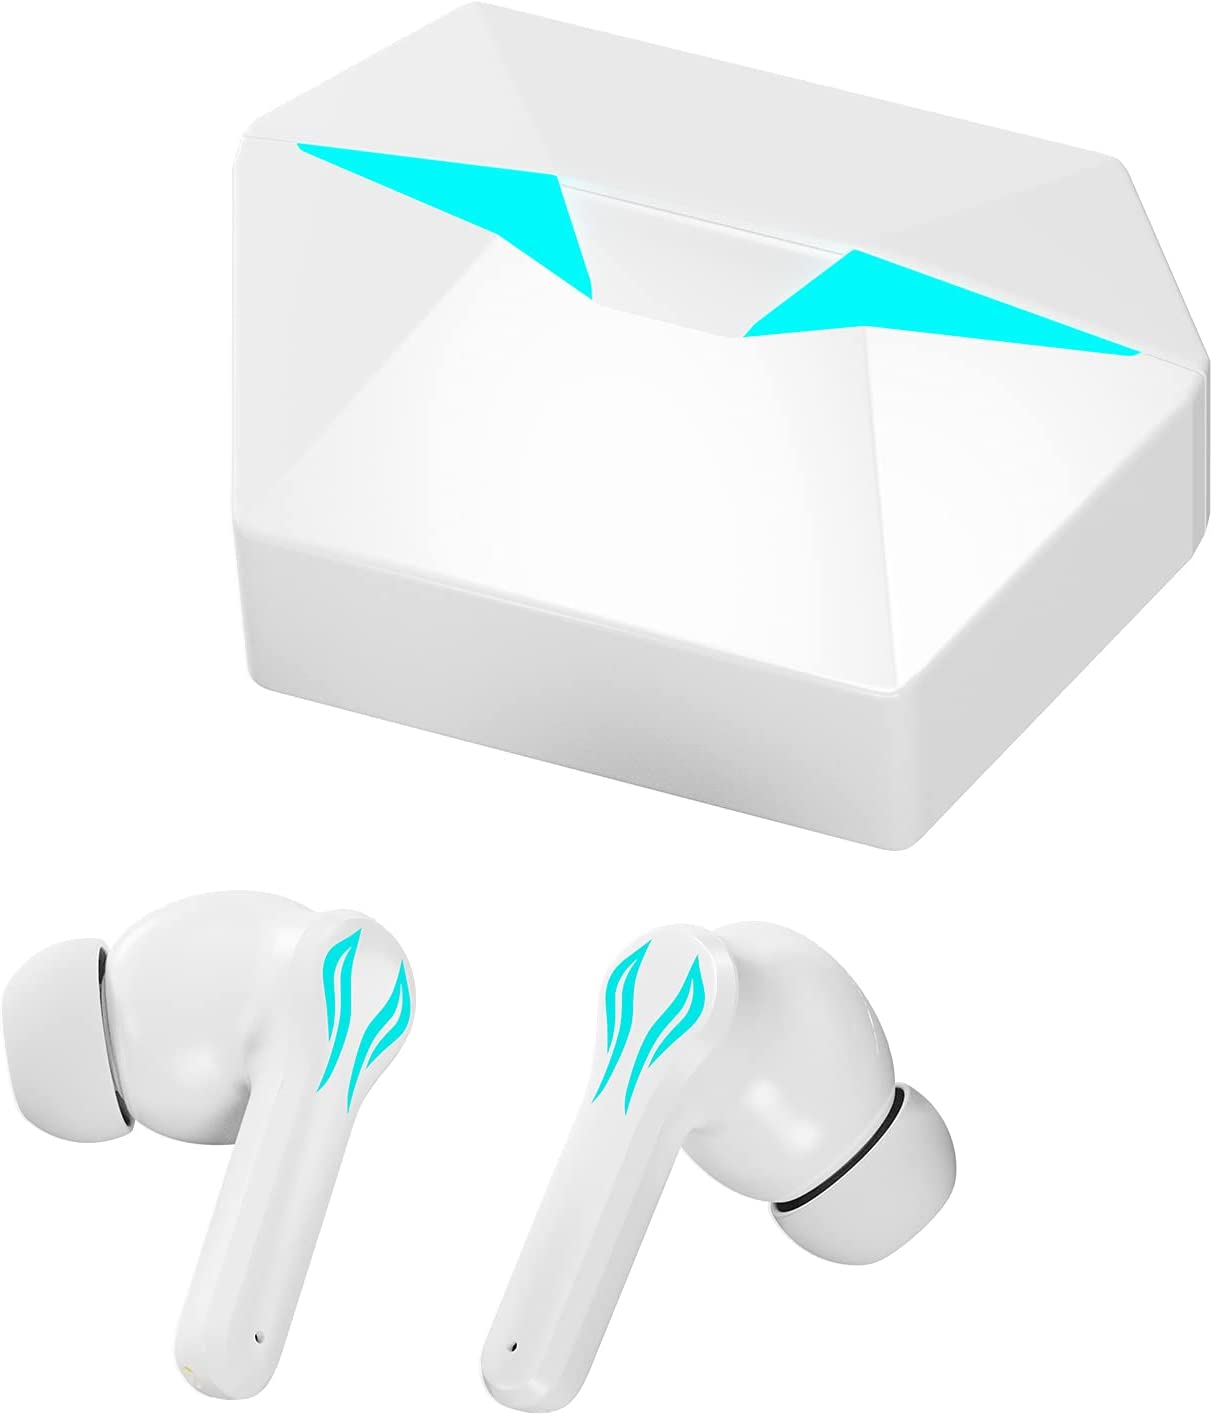 Wireless Earbuds,NMPB Bluetooth Headphones with Cool Light Effects and Music & Game Modes,Wireless Earphones with 48ms Ultra Low-Latency 30H Playtime Gaming Earphones for iPhone&Android (White)